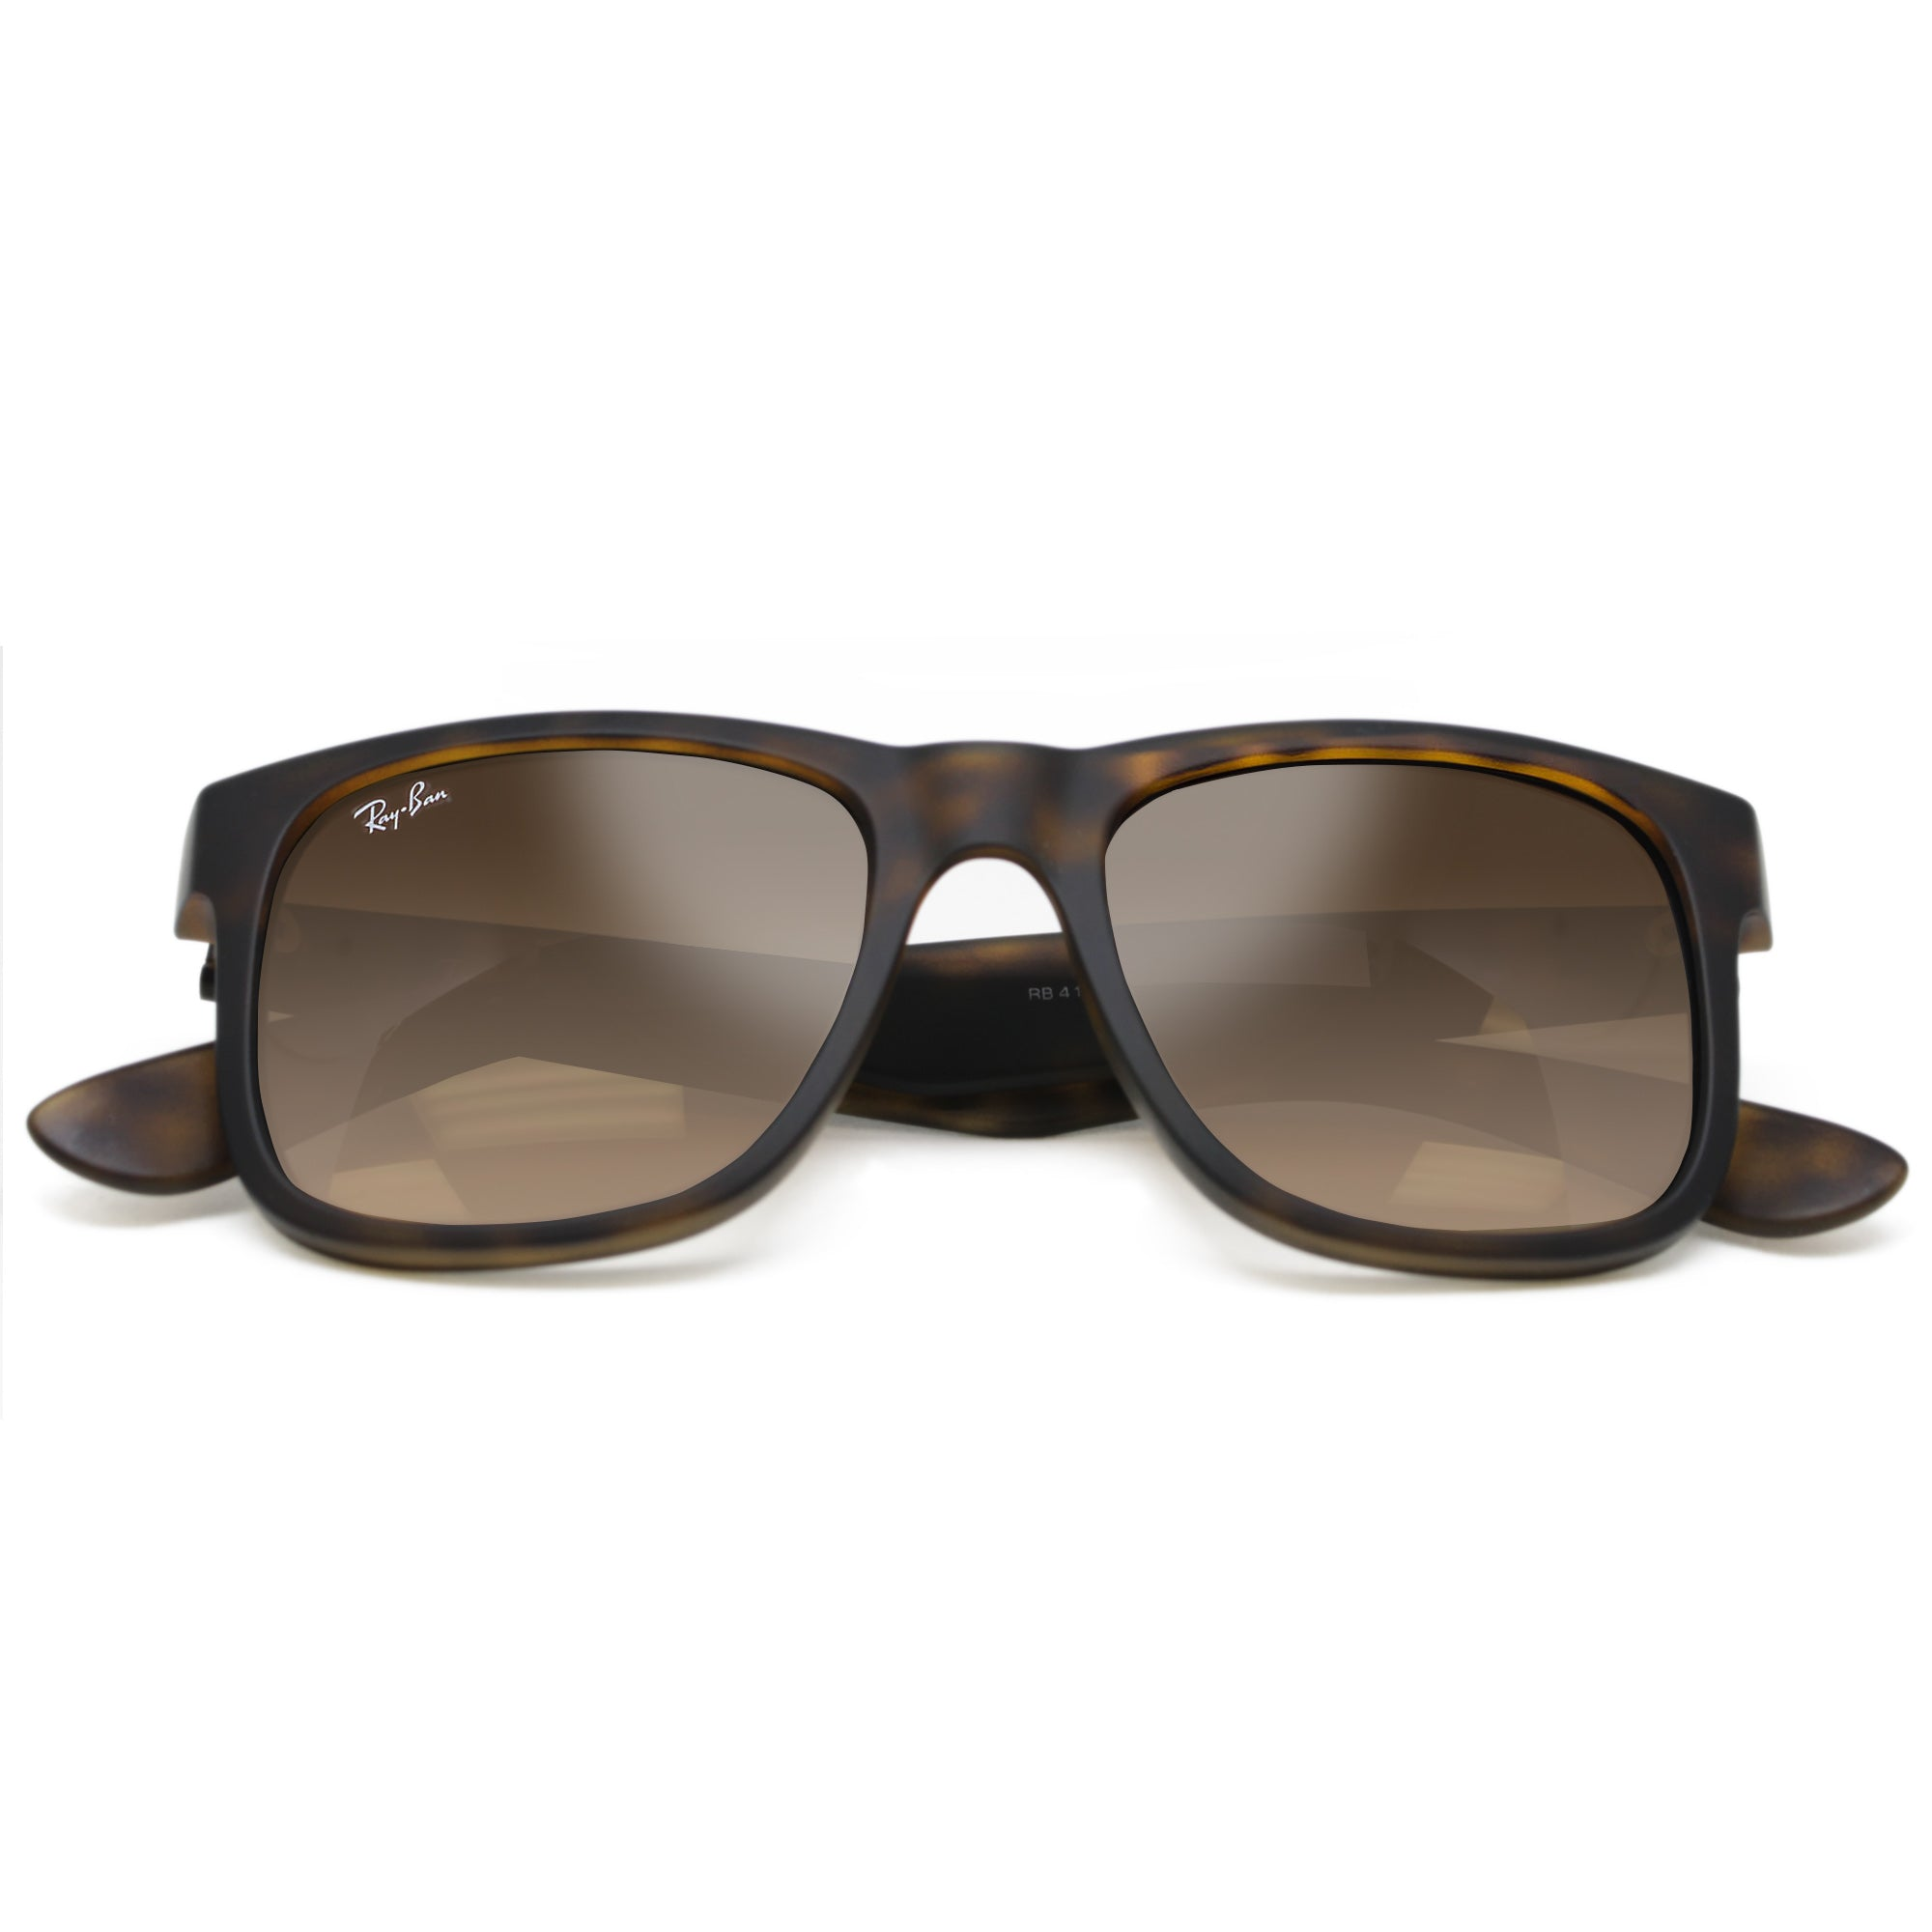 92d108d4a37 ... shop ray ban justin new 4165 unisex tortoise brown gradient 710 13 51  cdea9 ed3cb